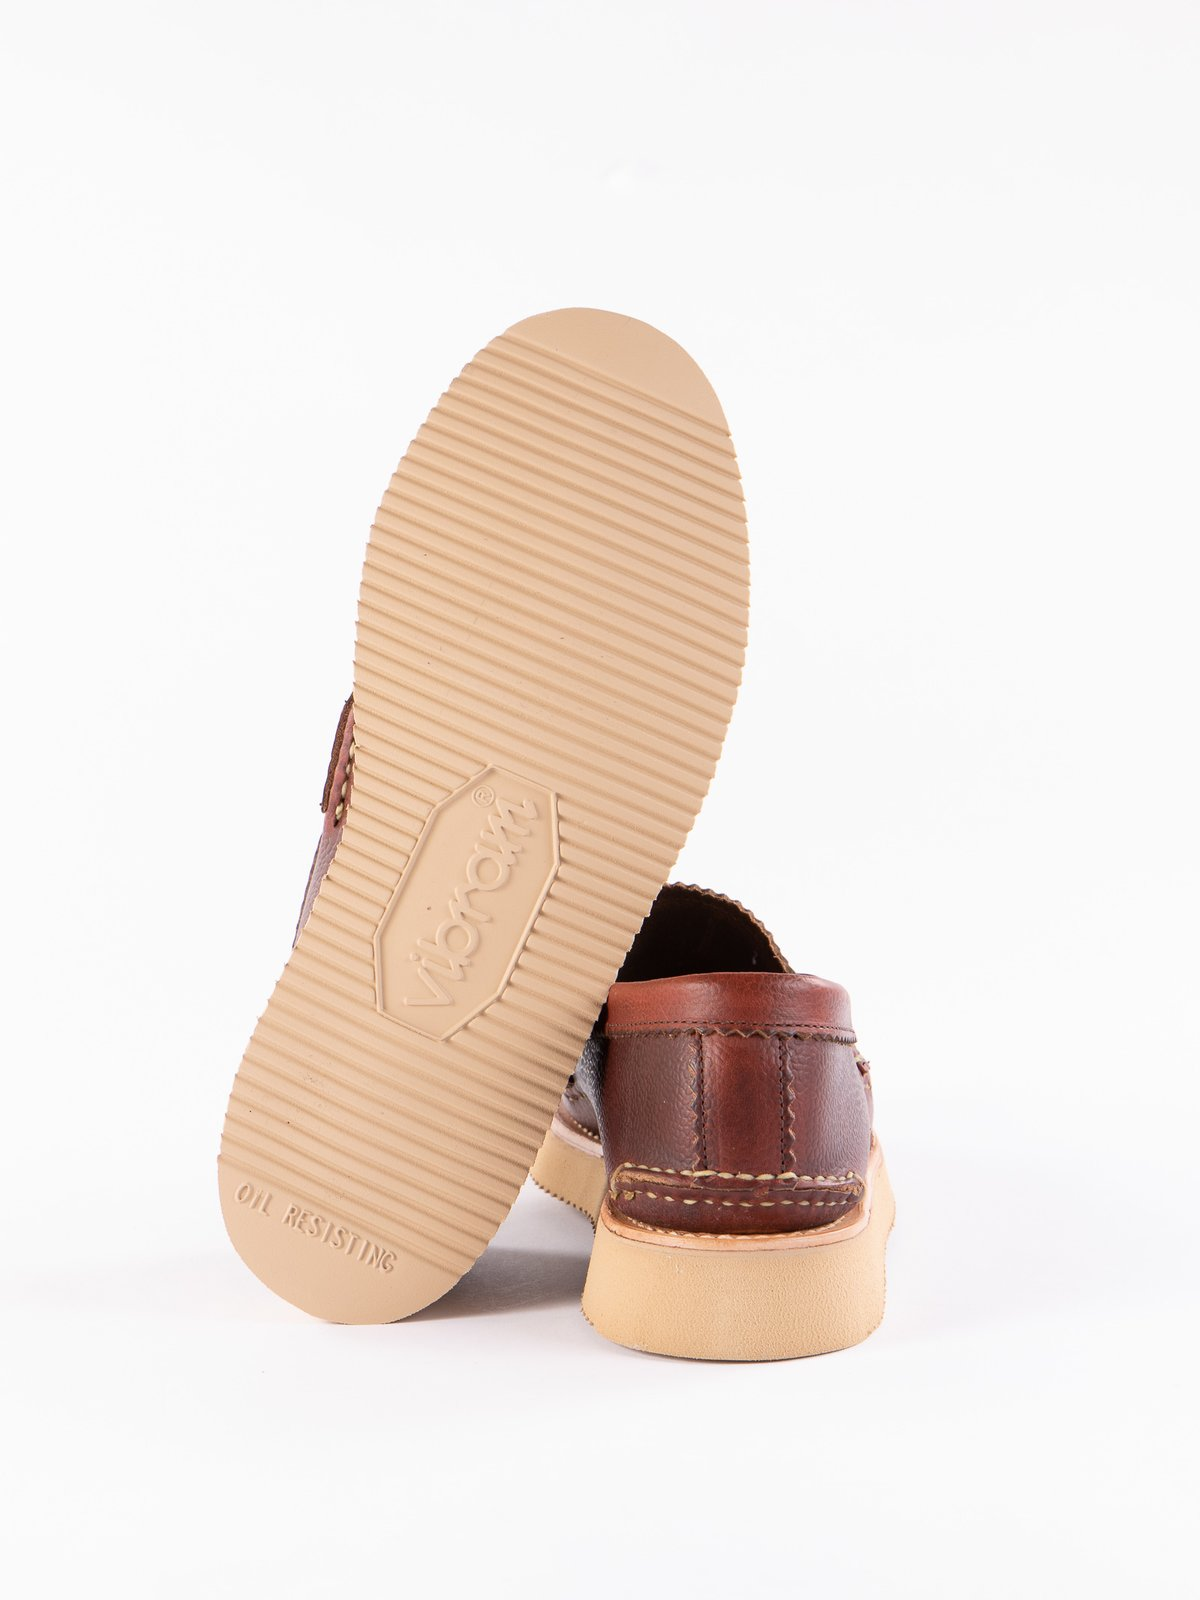 SG Tan Loafer Shoe Exclusive - Image 5